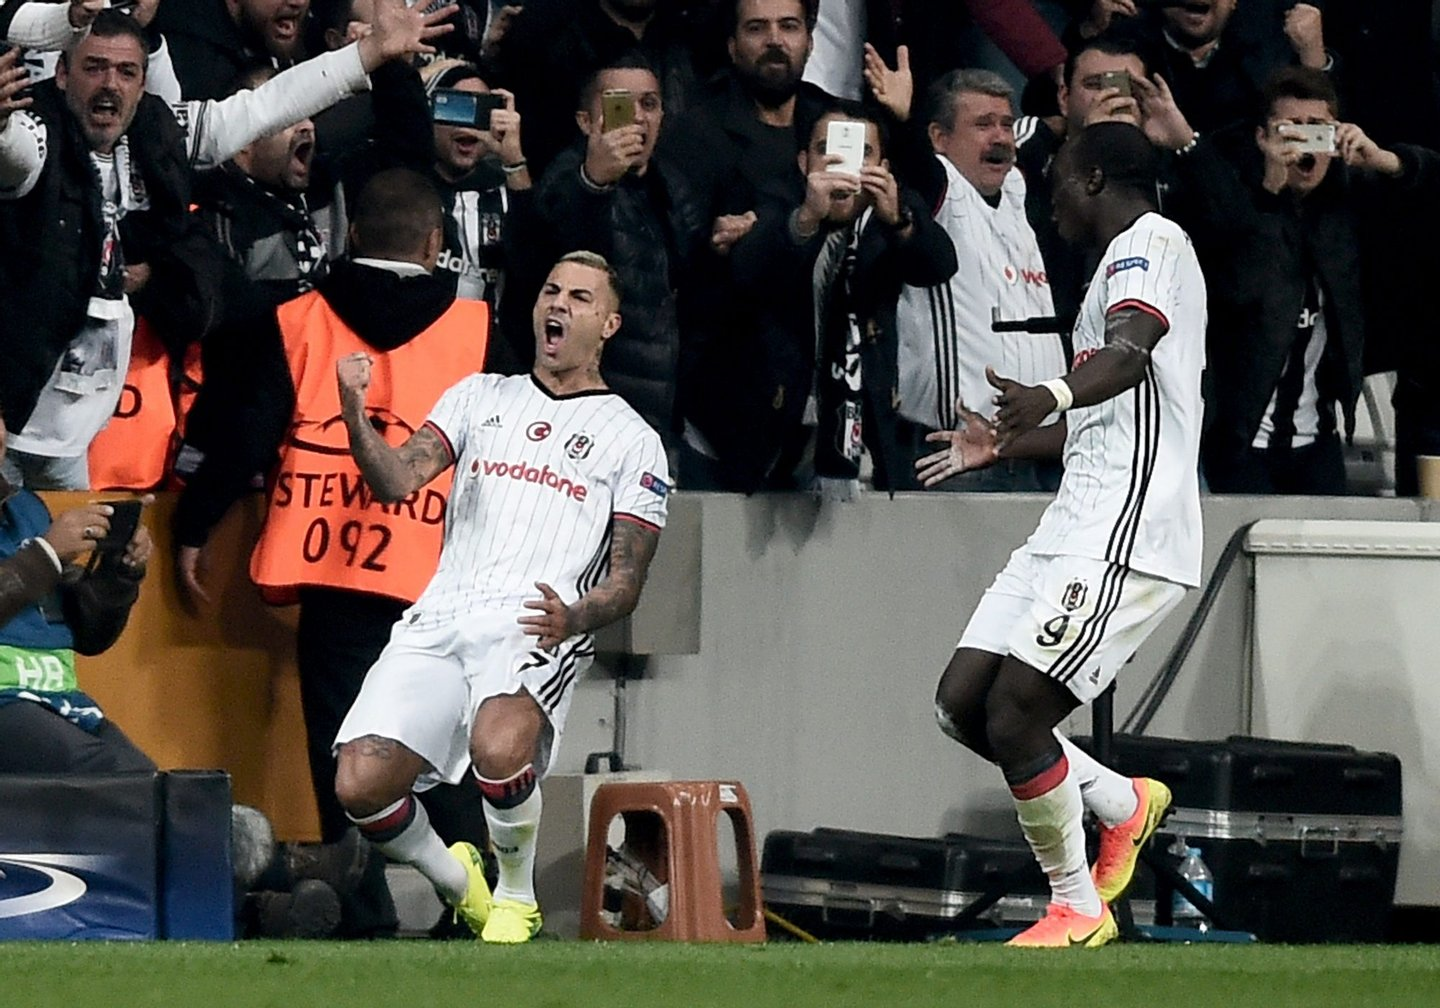 Besiktas' Portuguese midfielder Ricardo Quaresma (L) celebrates with teammate Cameroonian forward Vincent Aboubakar (R) after scoring a goal against Napoli during the UEFA Champions League football match between Besiktas and Napoli at the Vodafone Arena Stadium on November 1, 2016 in Istanbul. / AFP / OZAN KOSE (Photo credit should read OZAN KOSE/AFP/Getty Images)